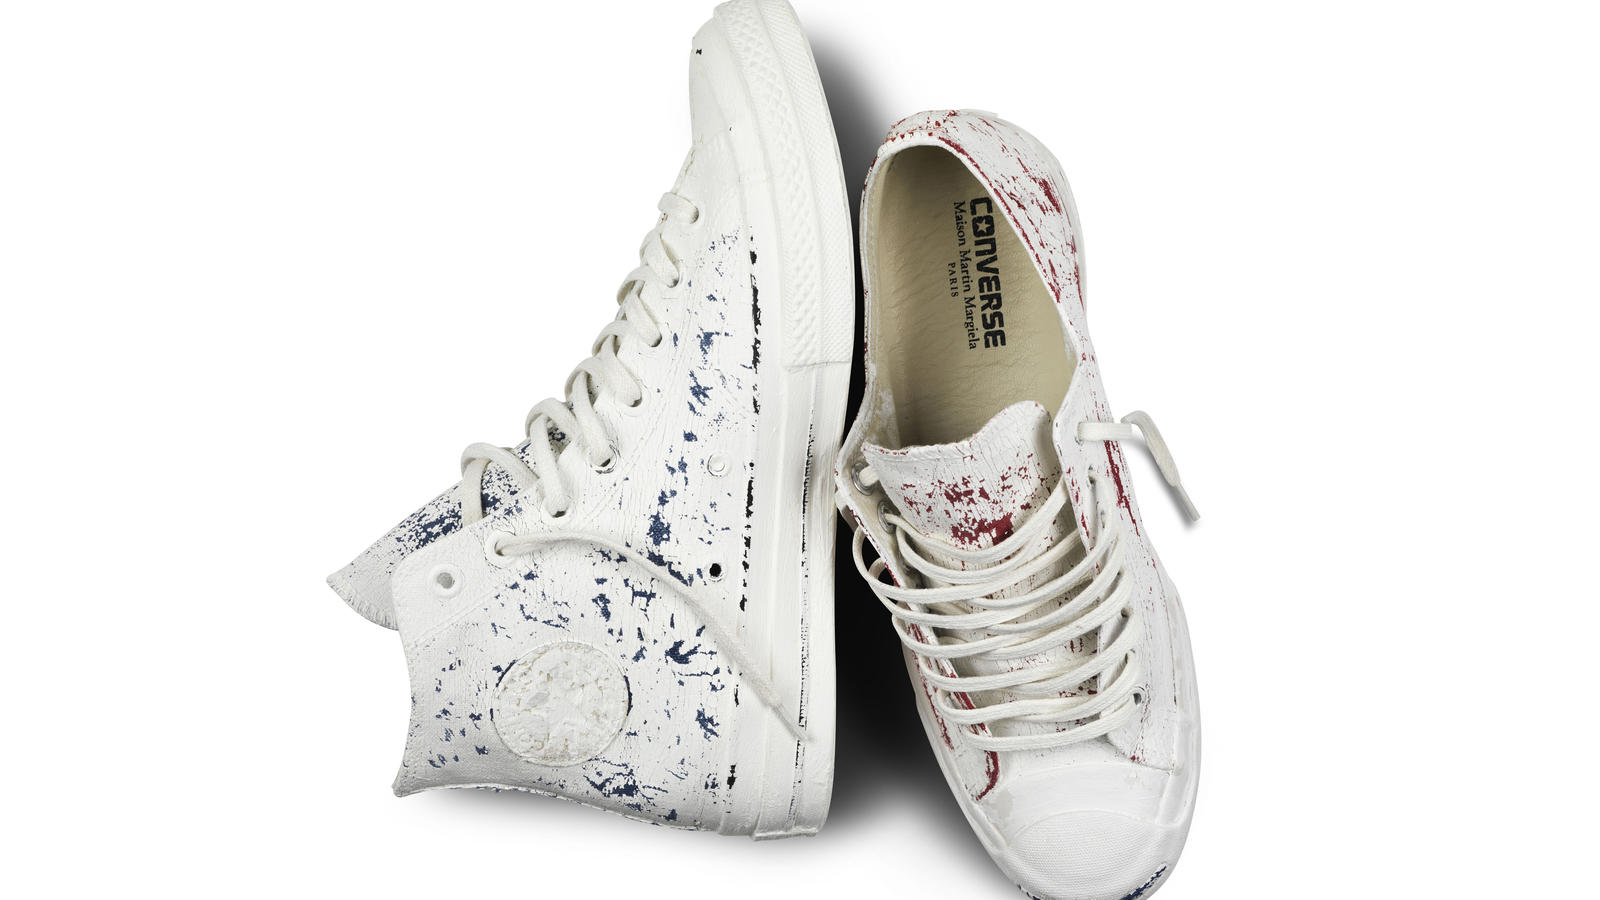 Converse And Maison Martin Margiela Join Forces For First